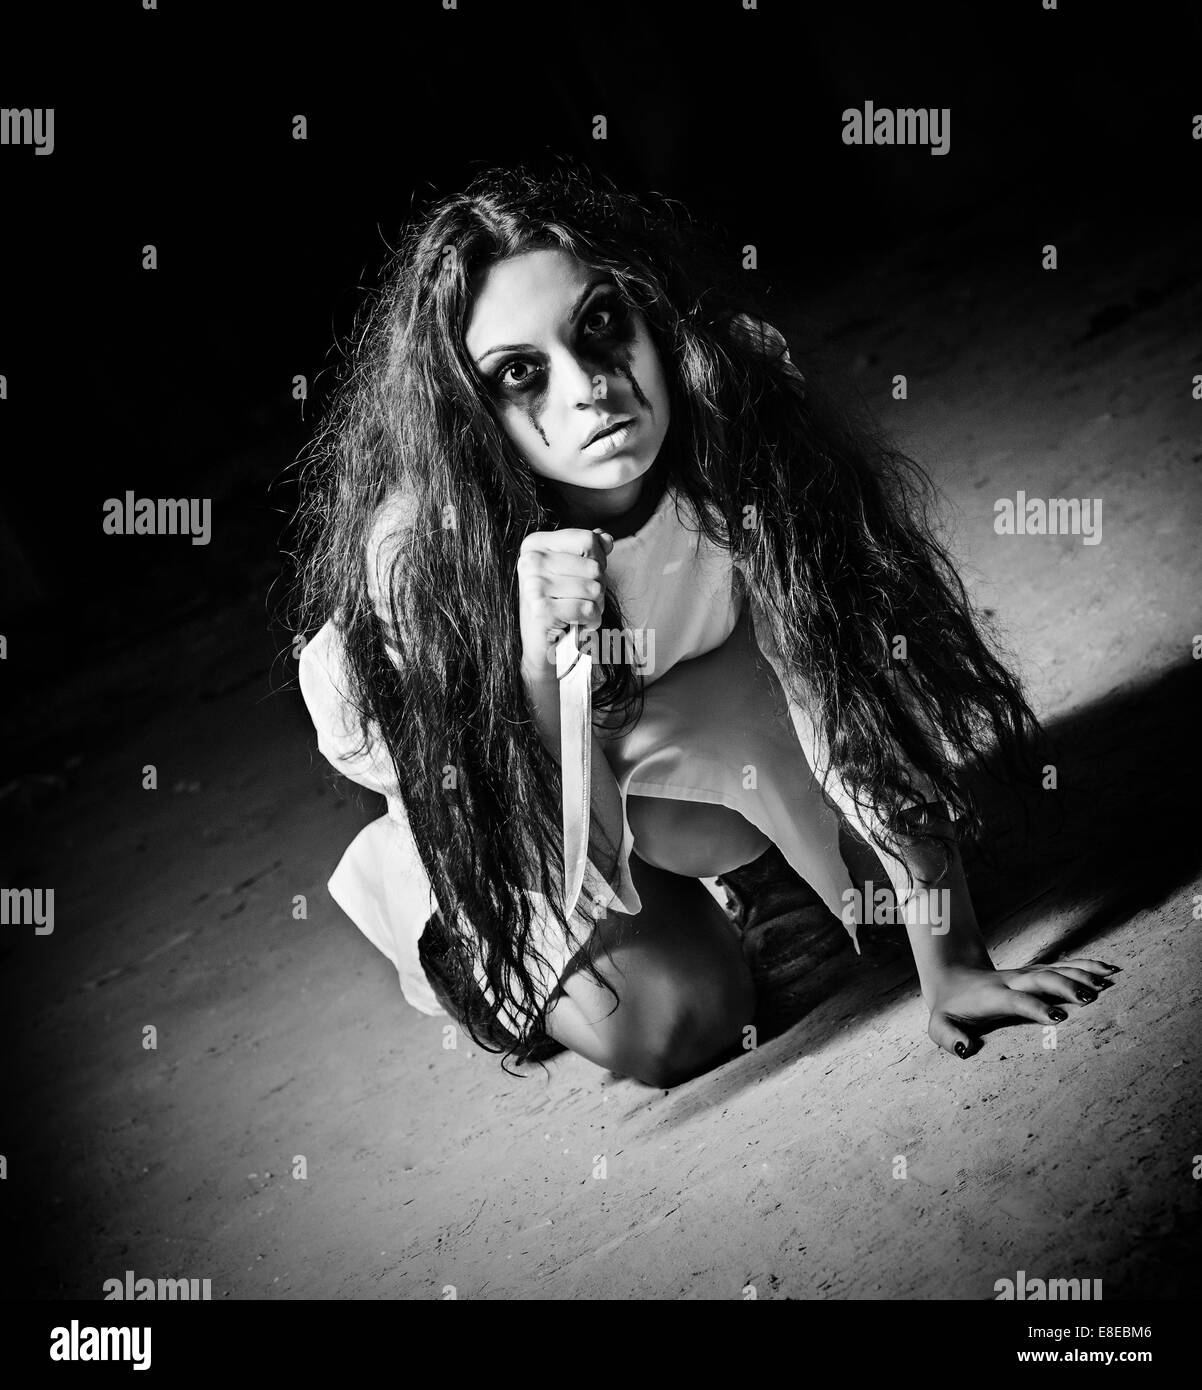 Horror shot a scary monster girl with knife in hands black and white